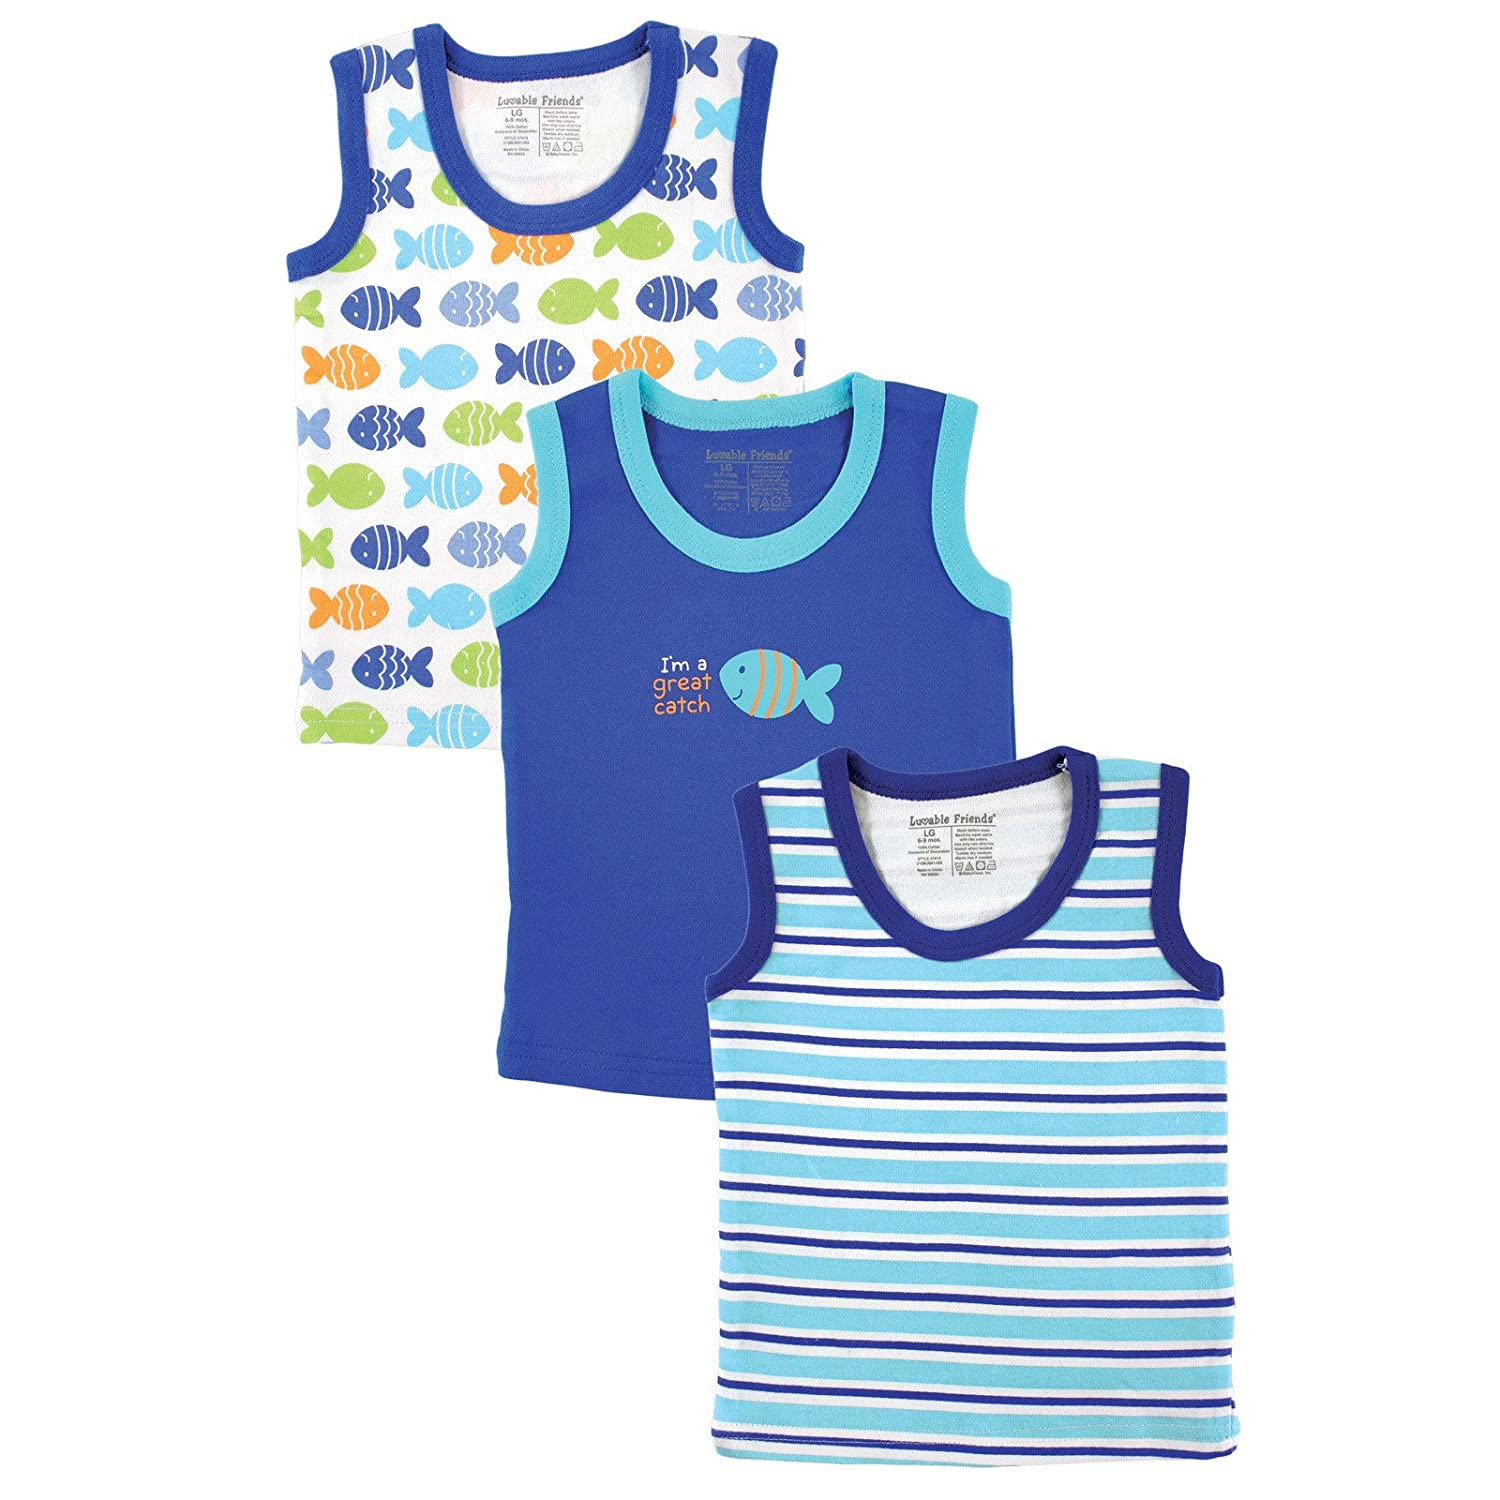 Luvable Friends Sleeveless Tee Tops, 3 Pack, Pink BabyVision 660168374346 PARENT